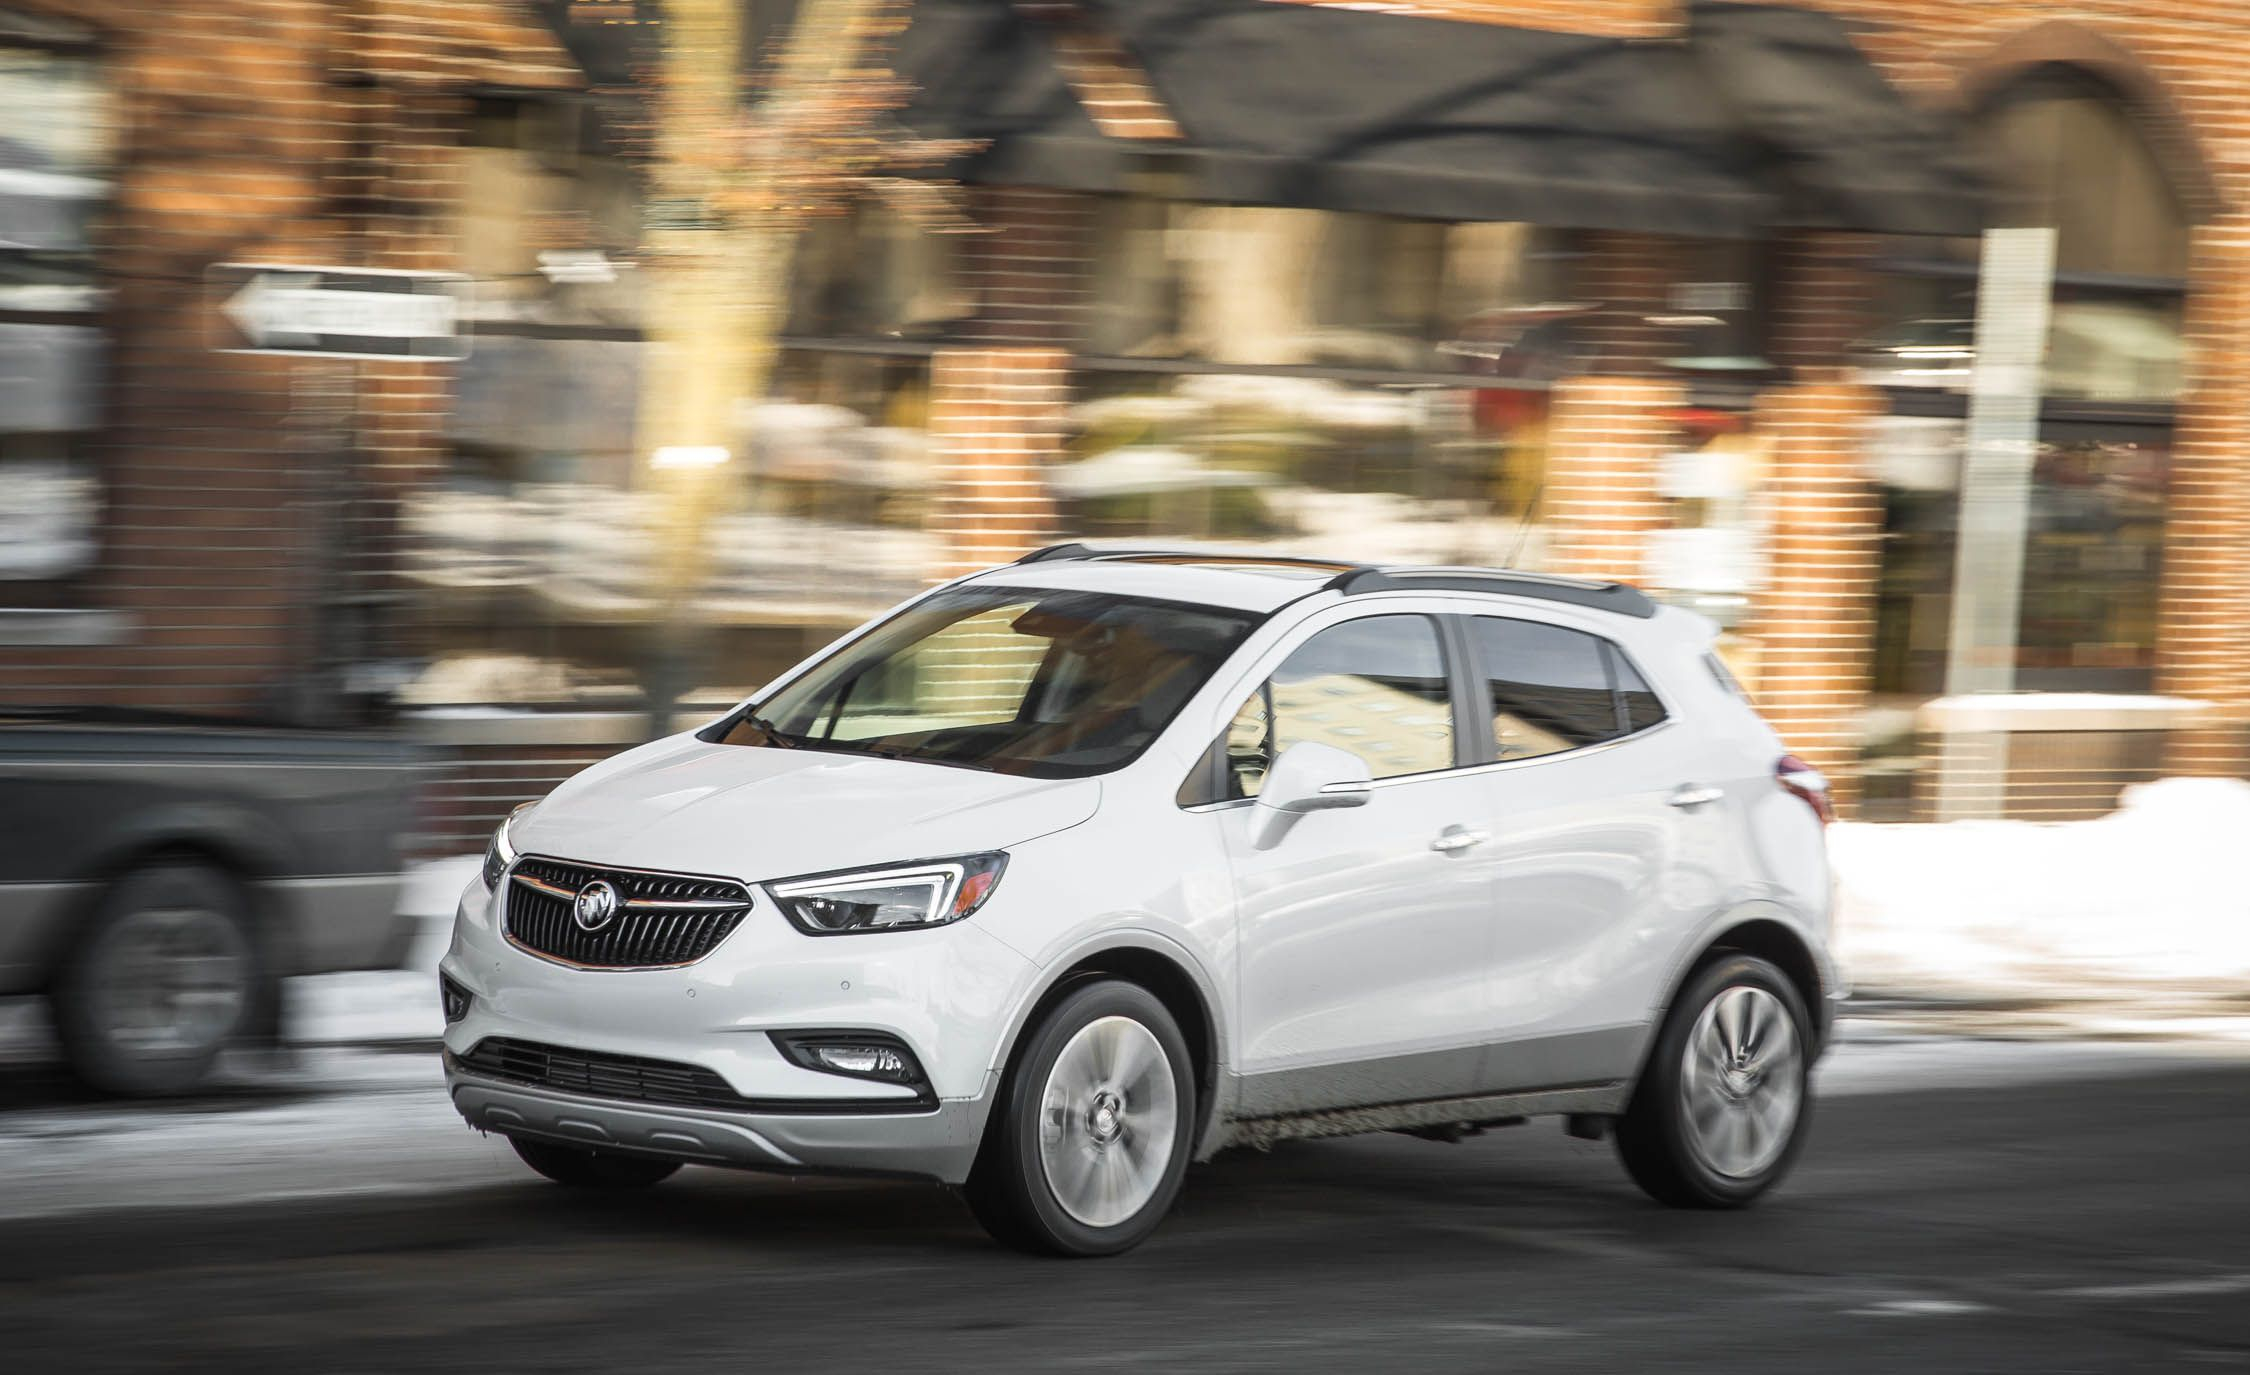 2019 Buick Encore Review, Pricing, And Specs New 2021 Buick Encore Problems, Specs, Safety Rating